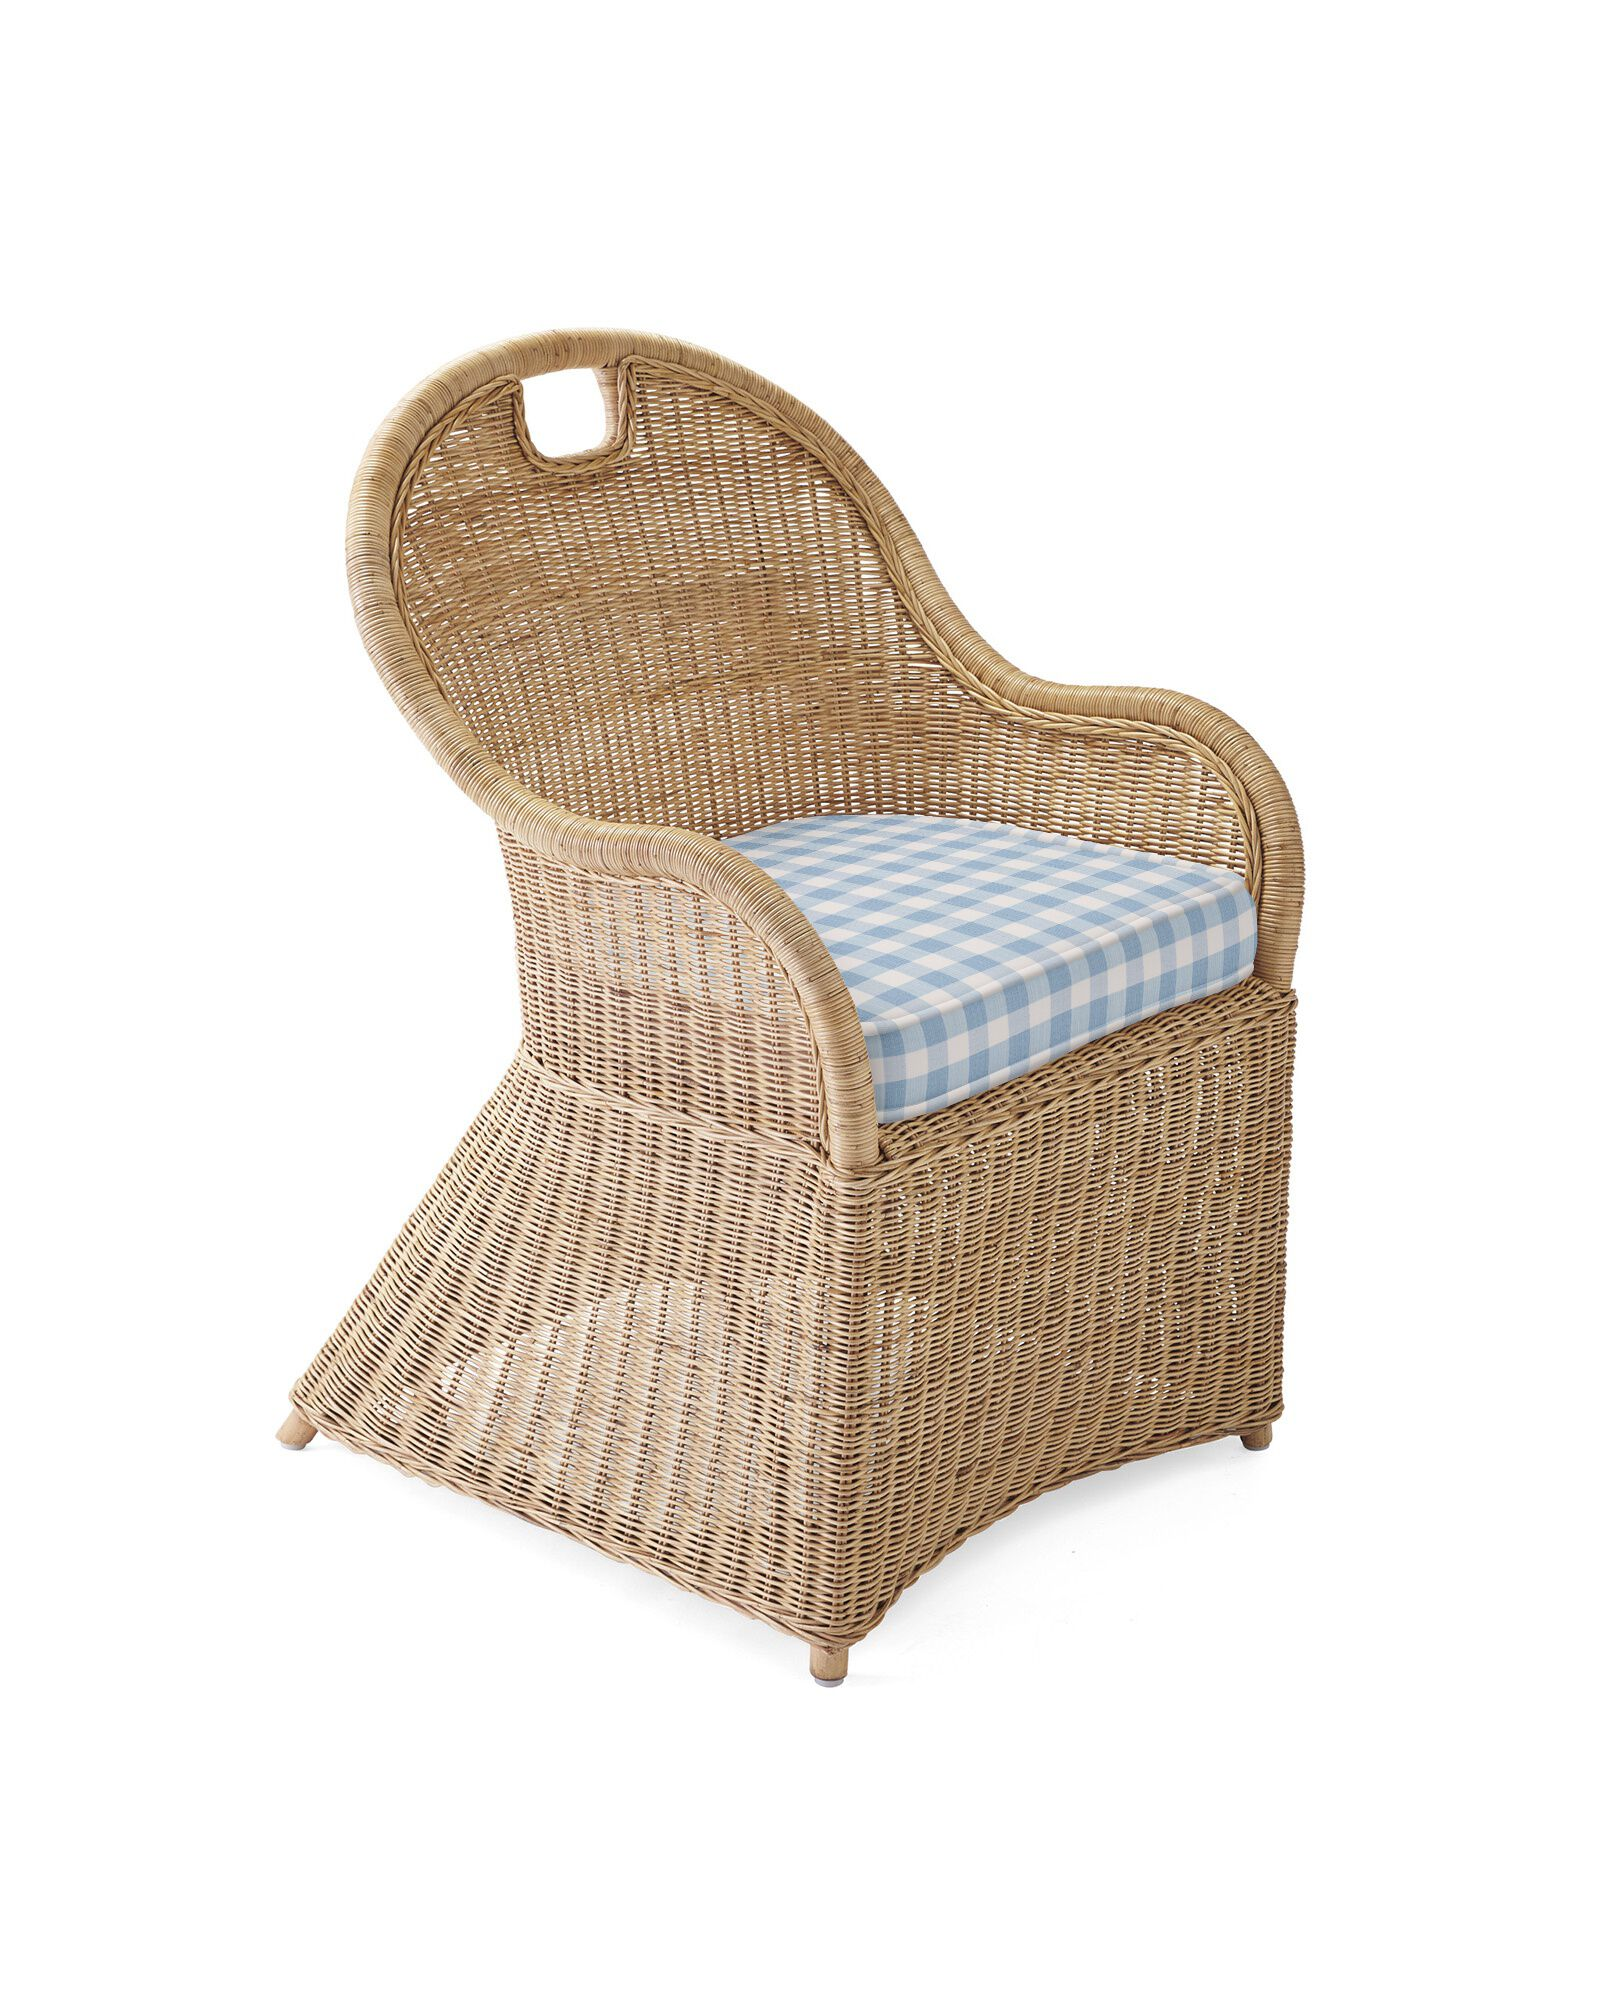 Cushion Cover for Shore Dining Chair & Counter Stool, Perennials Classic Gingham Coastal Blue